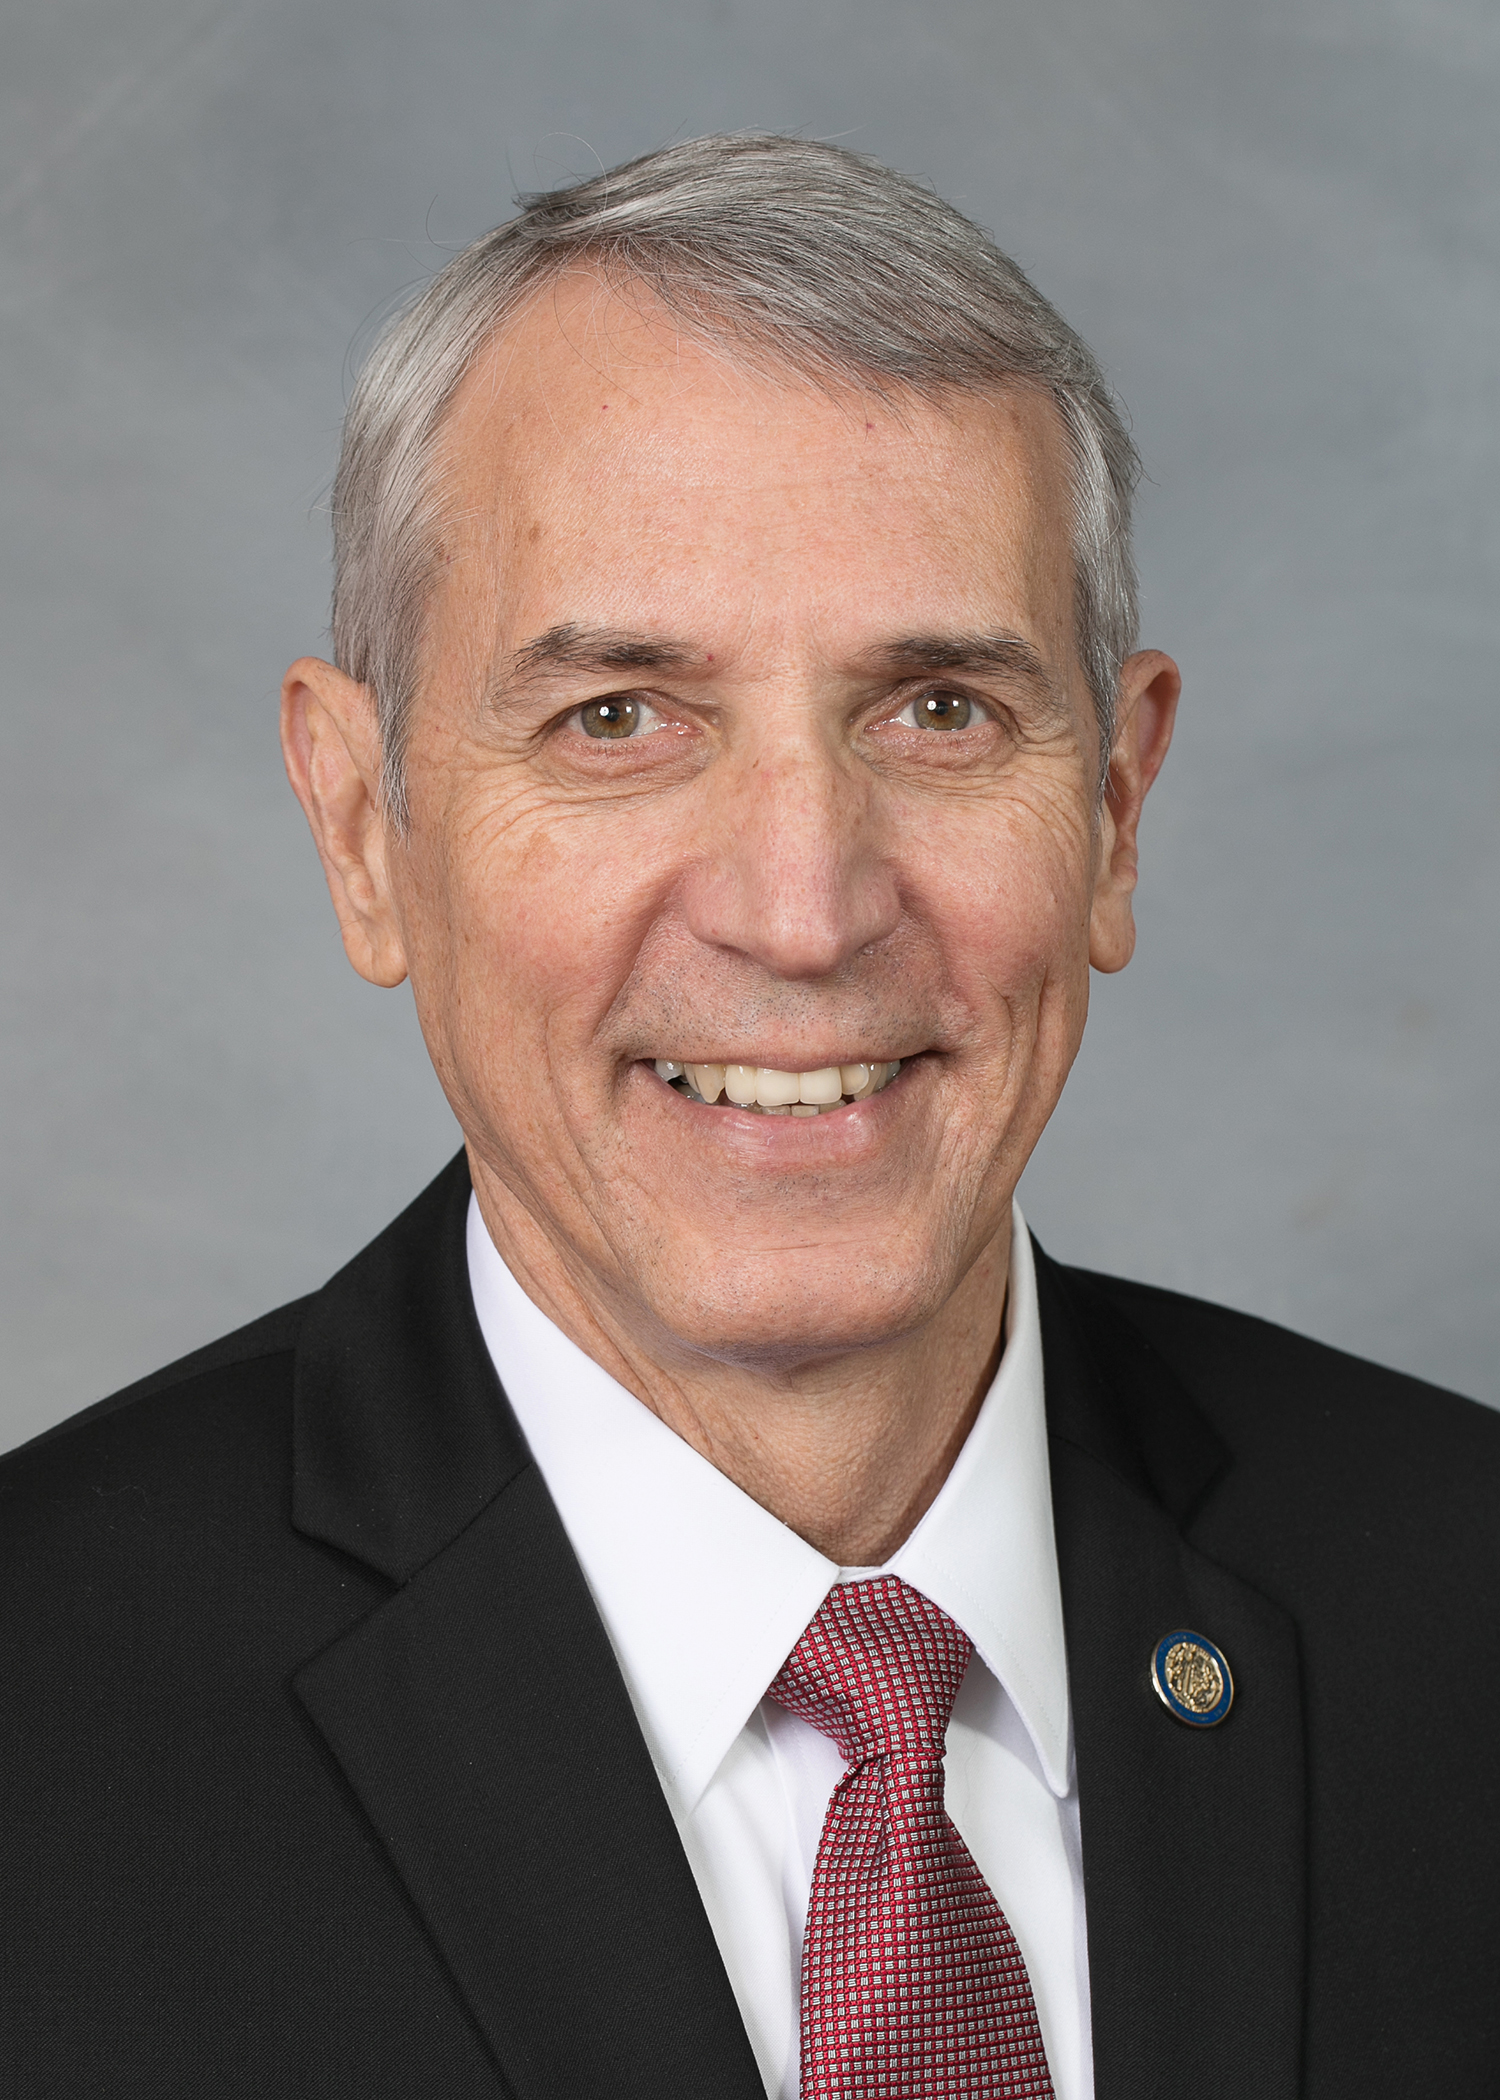 John Szoka, State Representative, North Carolina